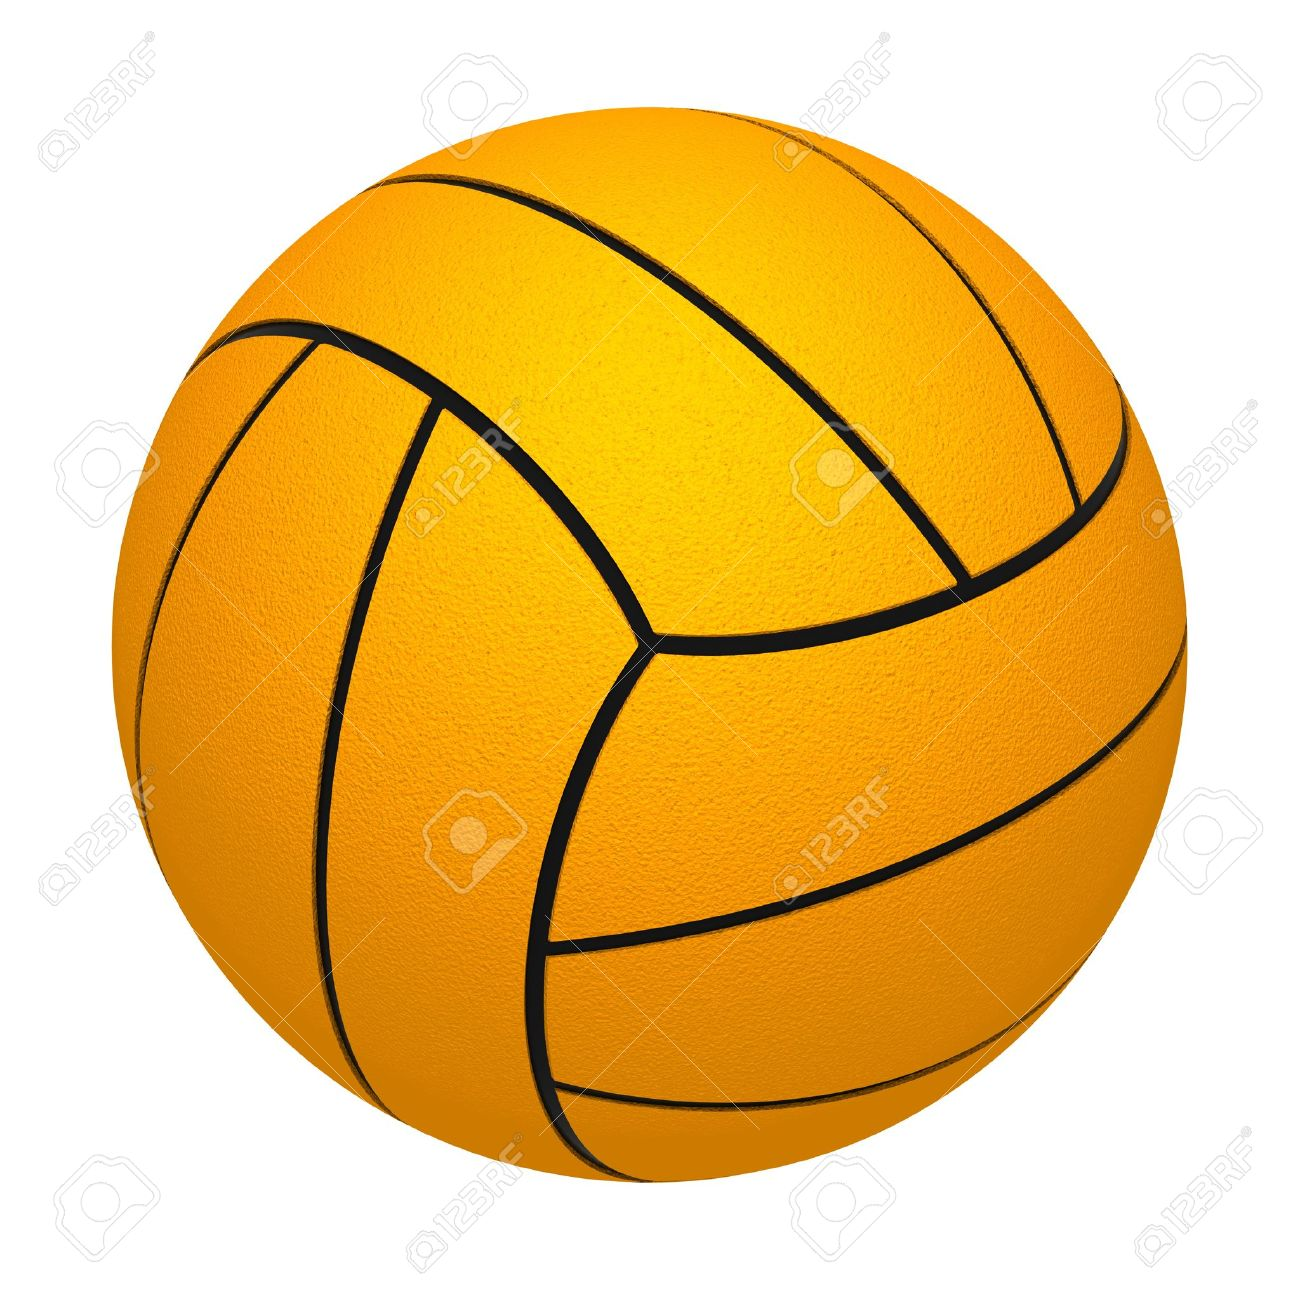 Water polo ball clipart 2 » Clipart Station.